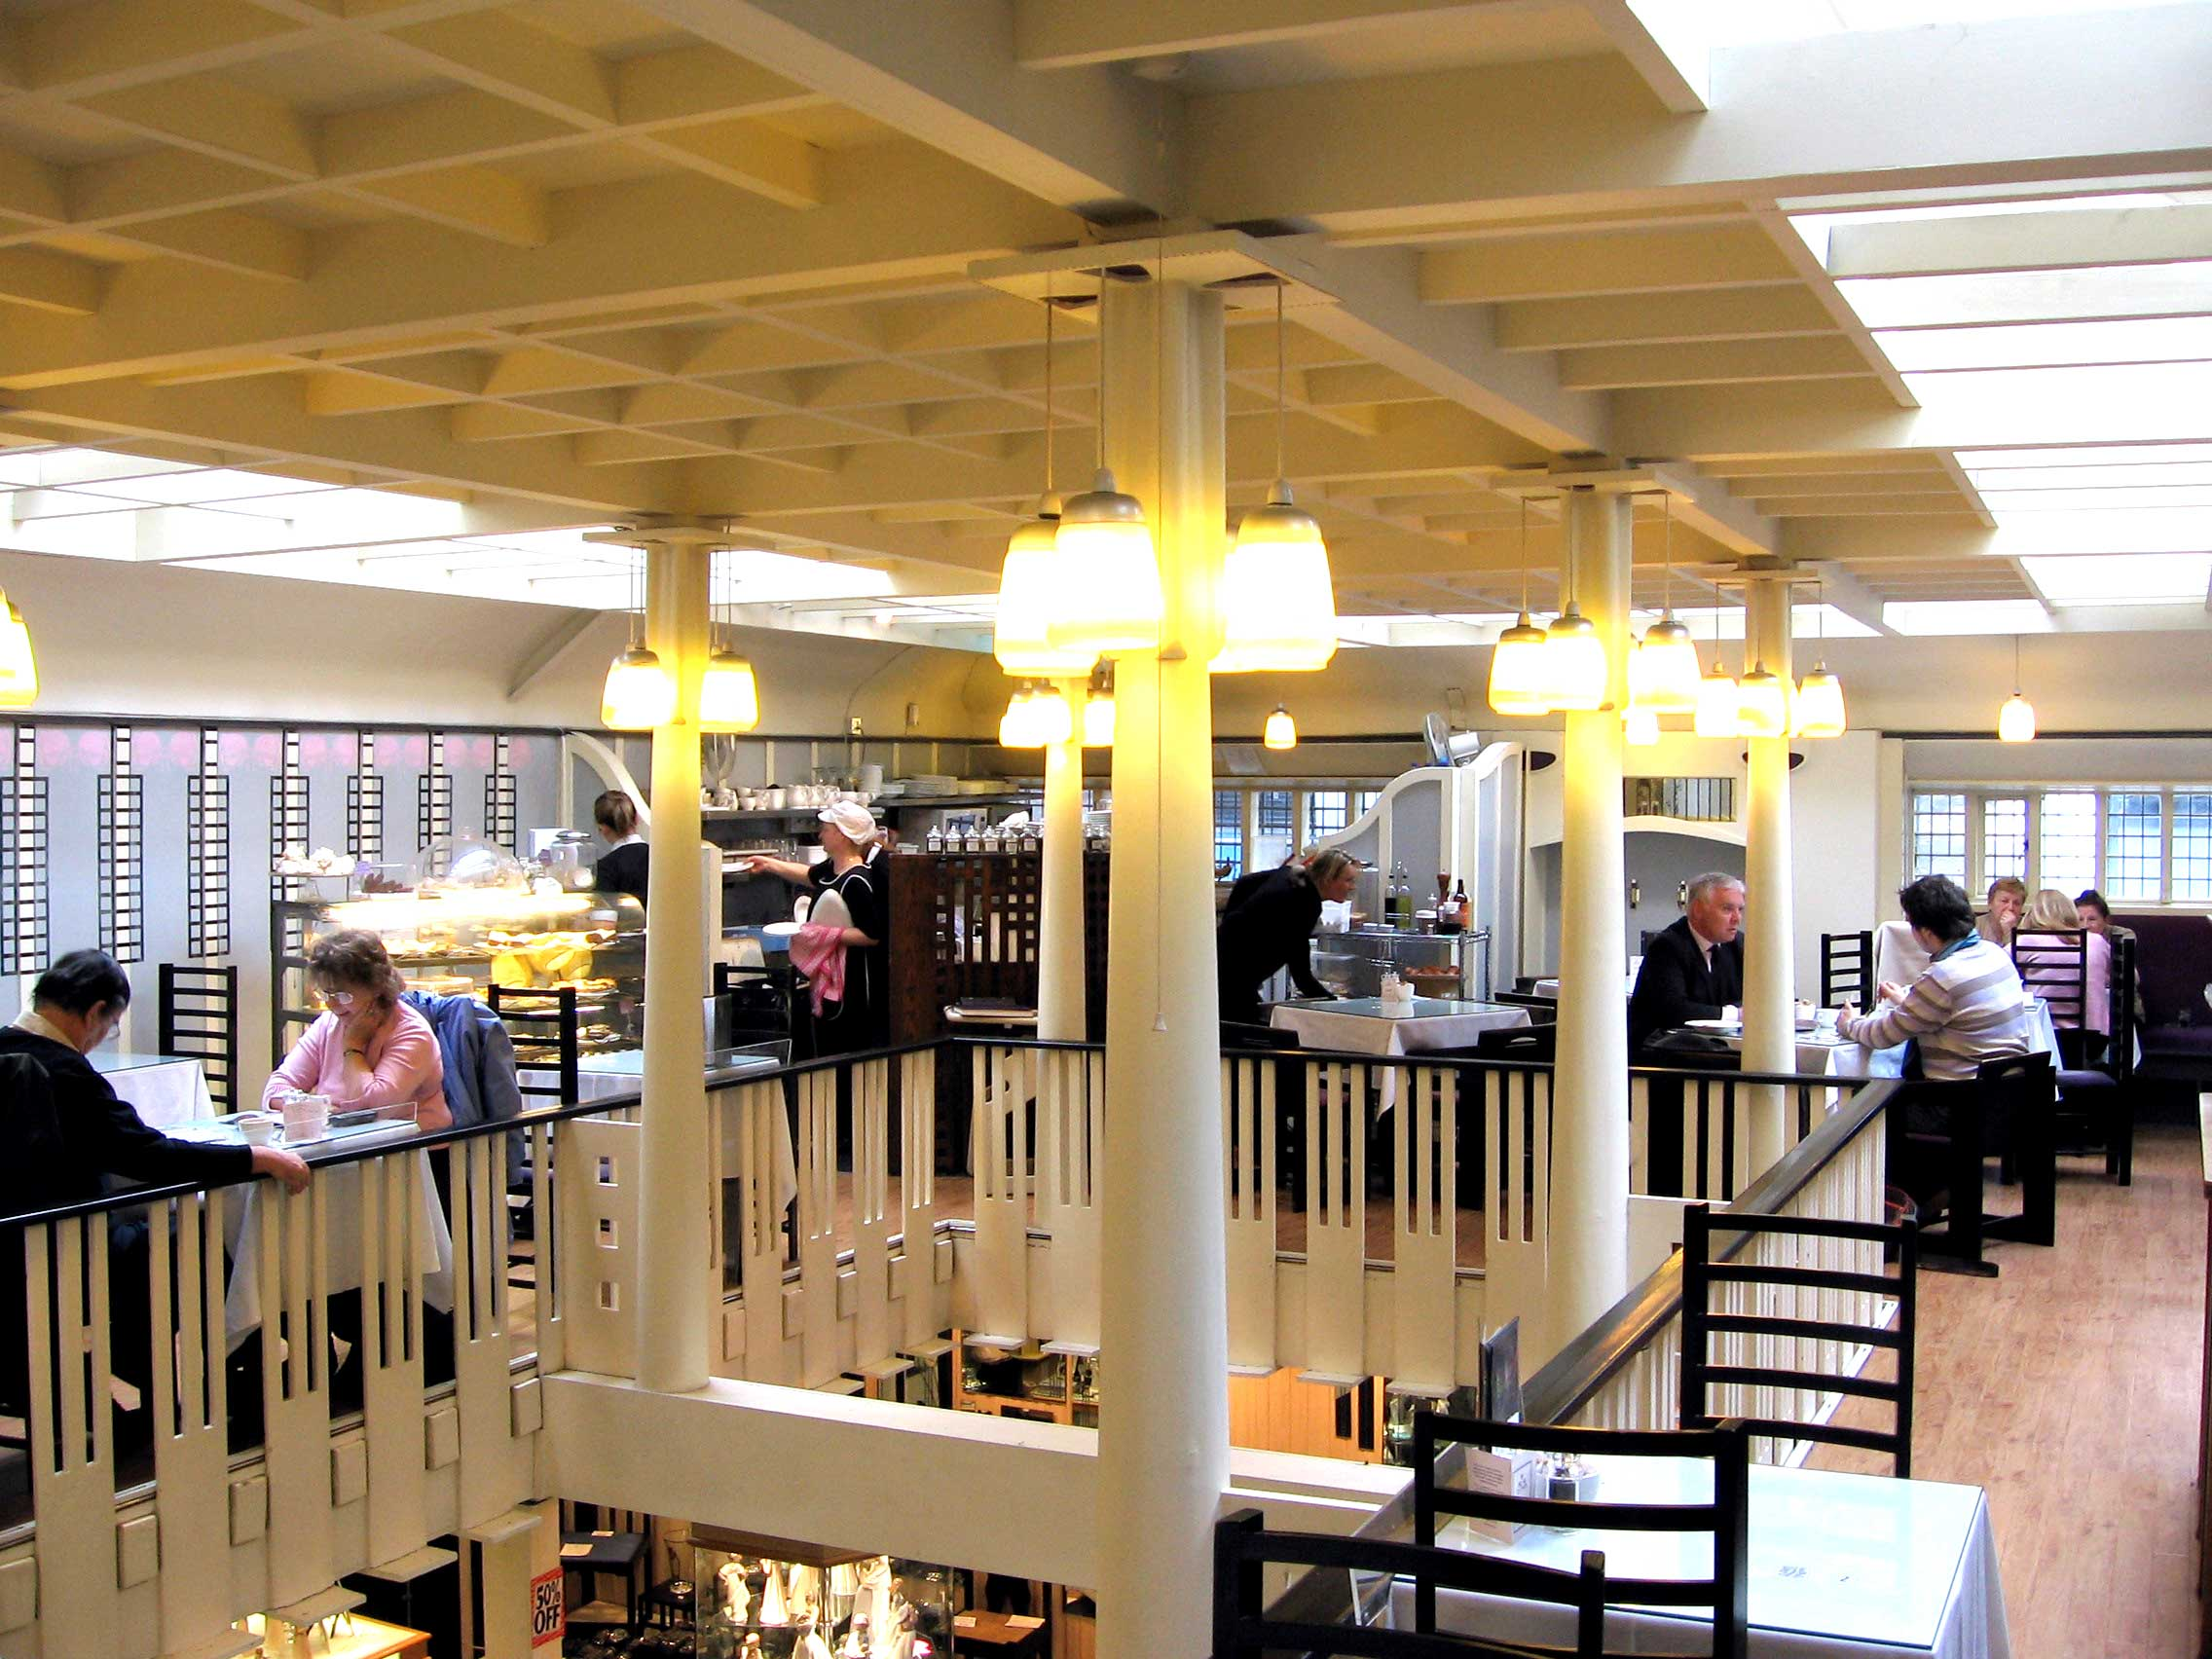 modernity the willow tea rooms The willow tearooms are tearooms at 217 sauchiehall street, glasgow, scotland, designed by internationally renowned architect charles rennie mackintosh, which opened for business in october 1903.